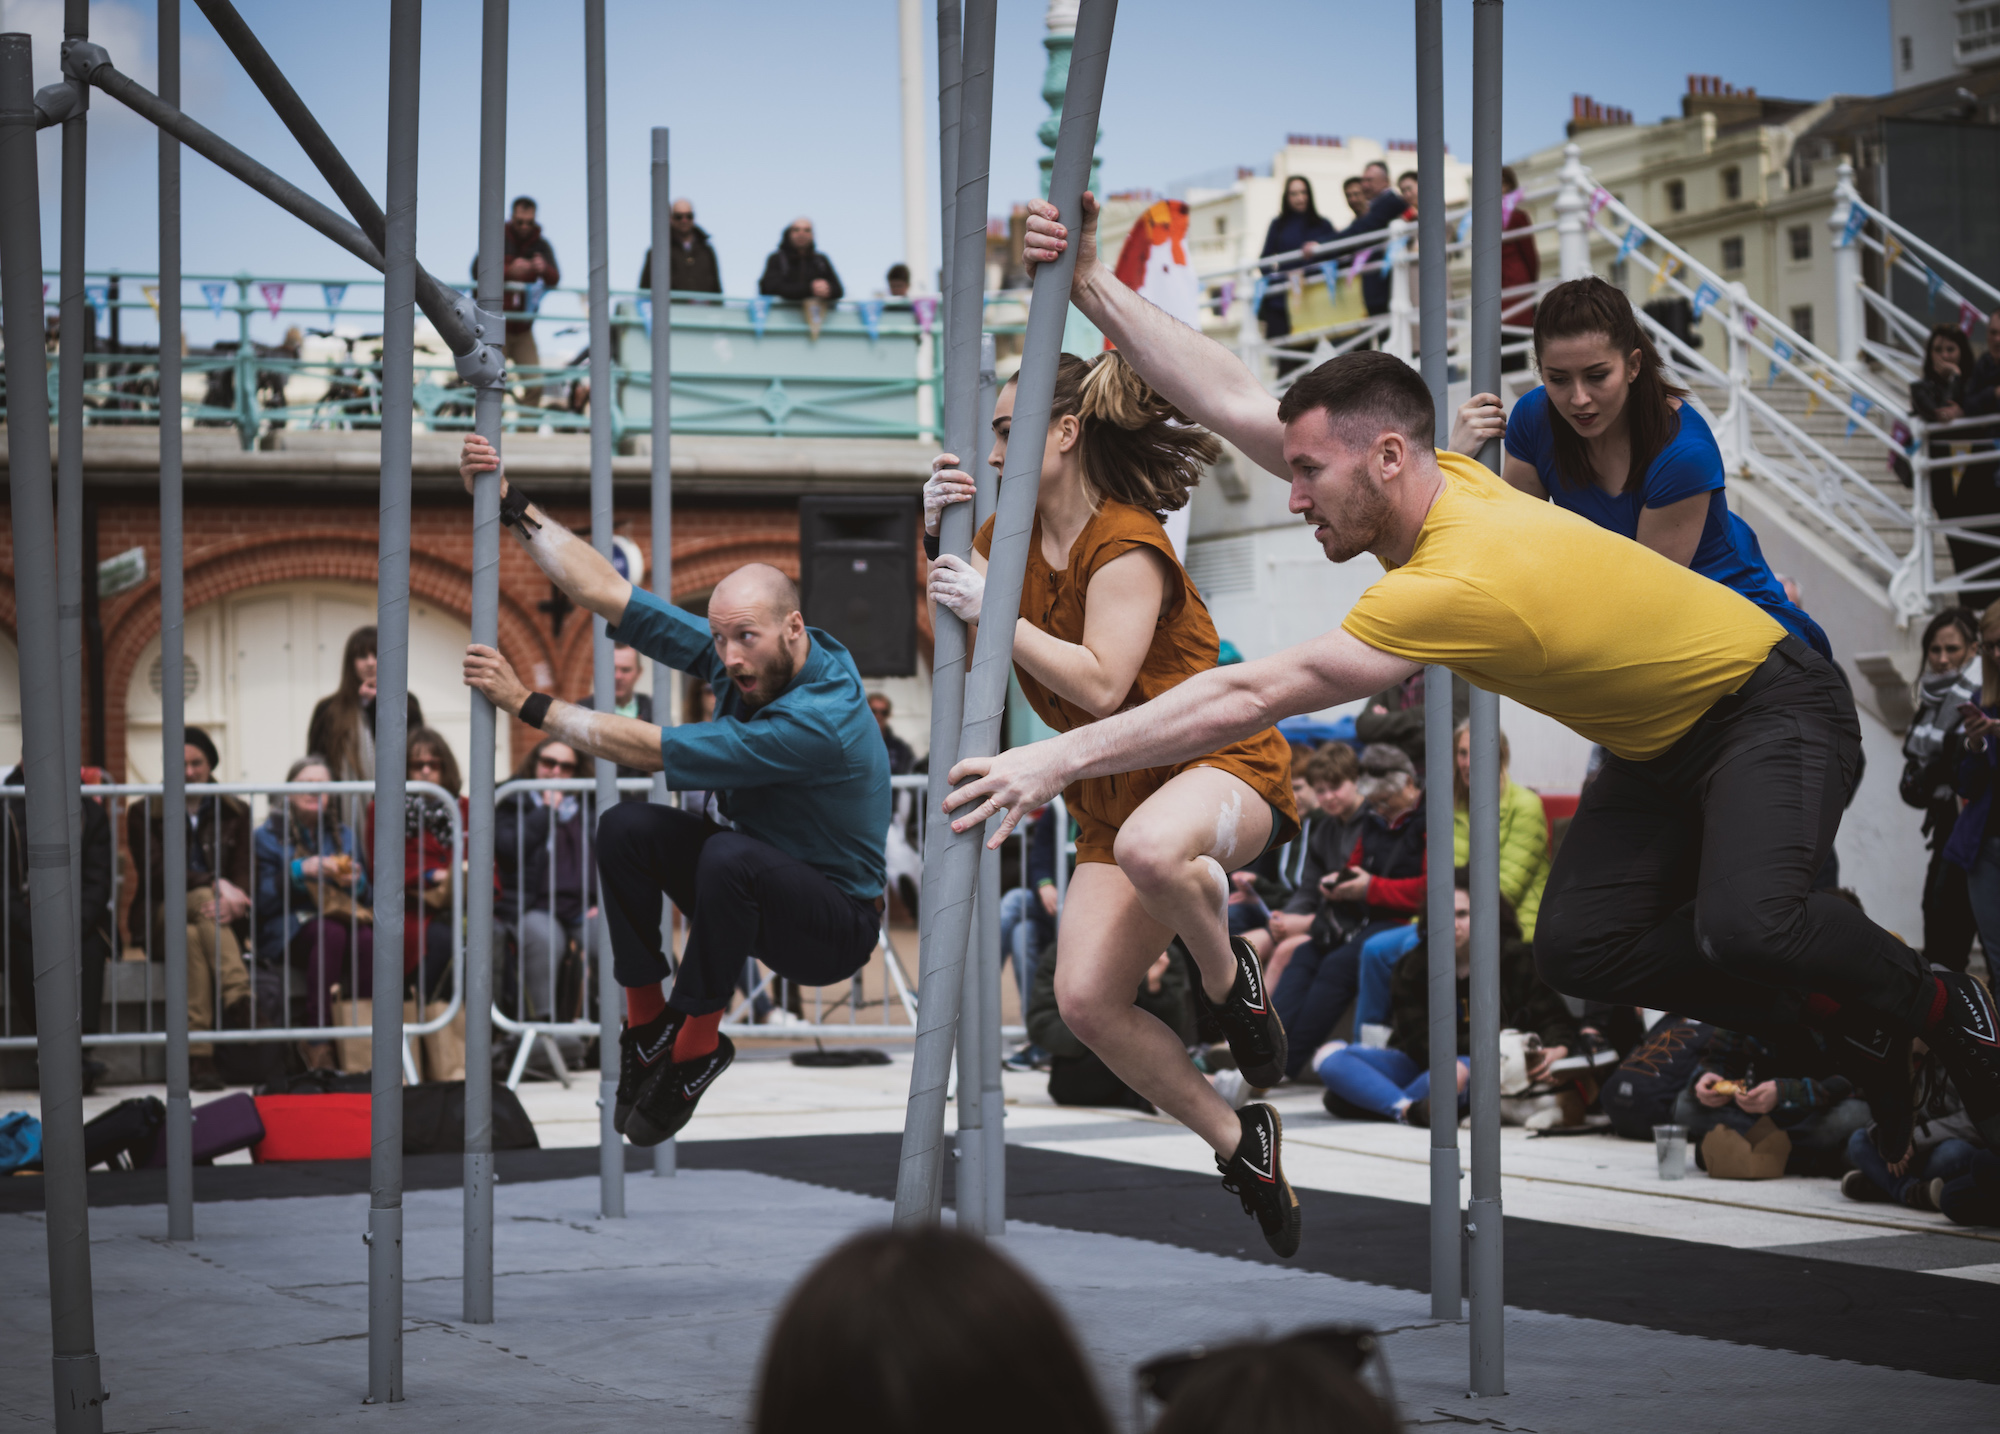 Four acrobatic performers from Motionhouse swing around scaffolding in an outdoor show